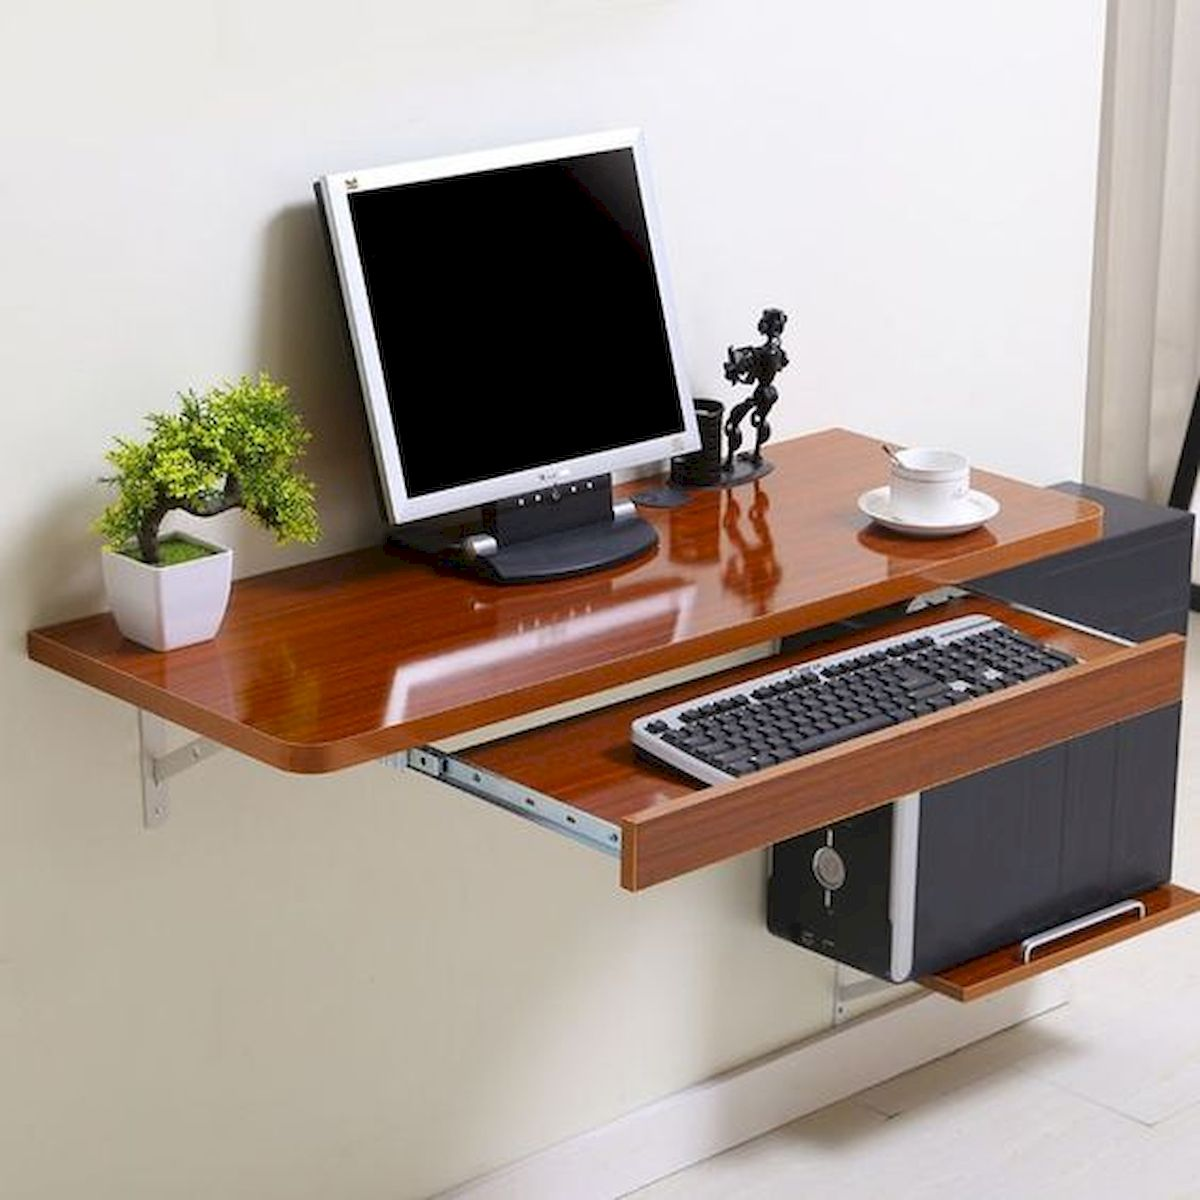 55 Fantastic DIY Computer Desk Design Ideas and Decor ...